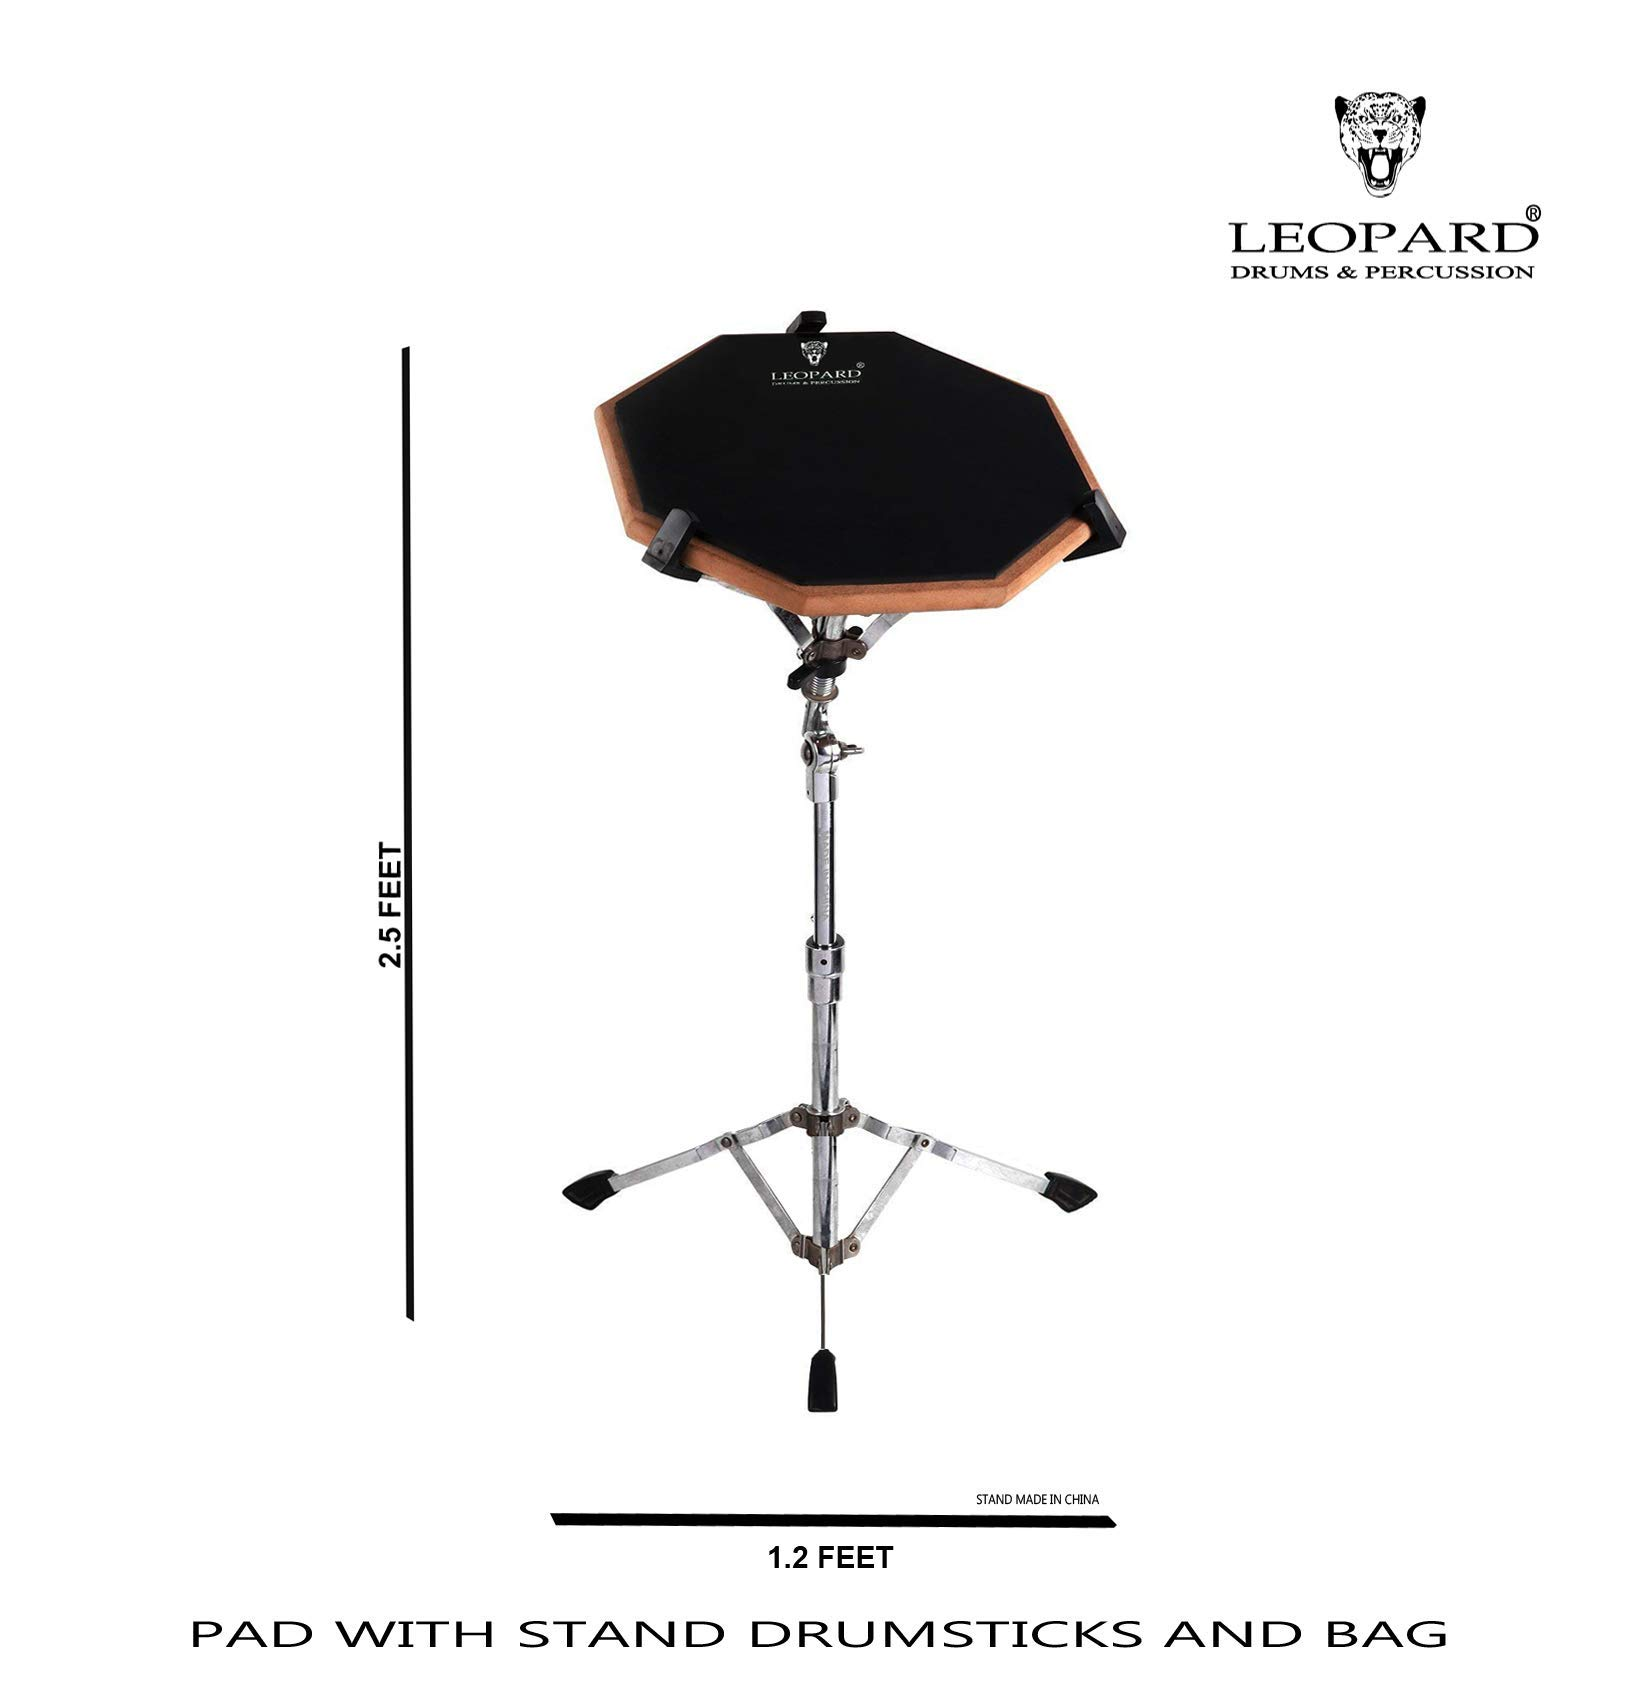 LEOPARD 2 SIDED DRUM PRACTICE PAD WITH STICKS AND BAG product image